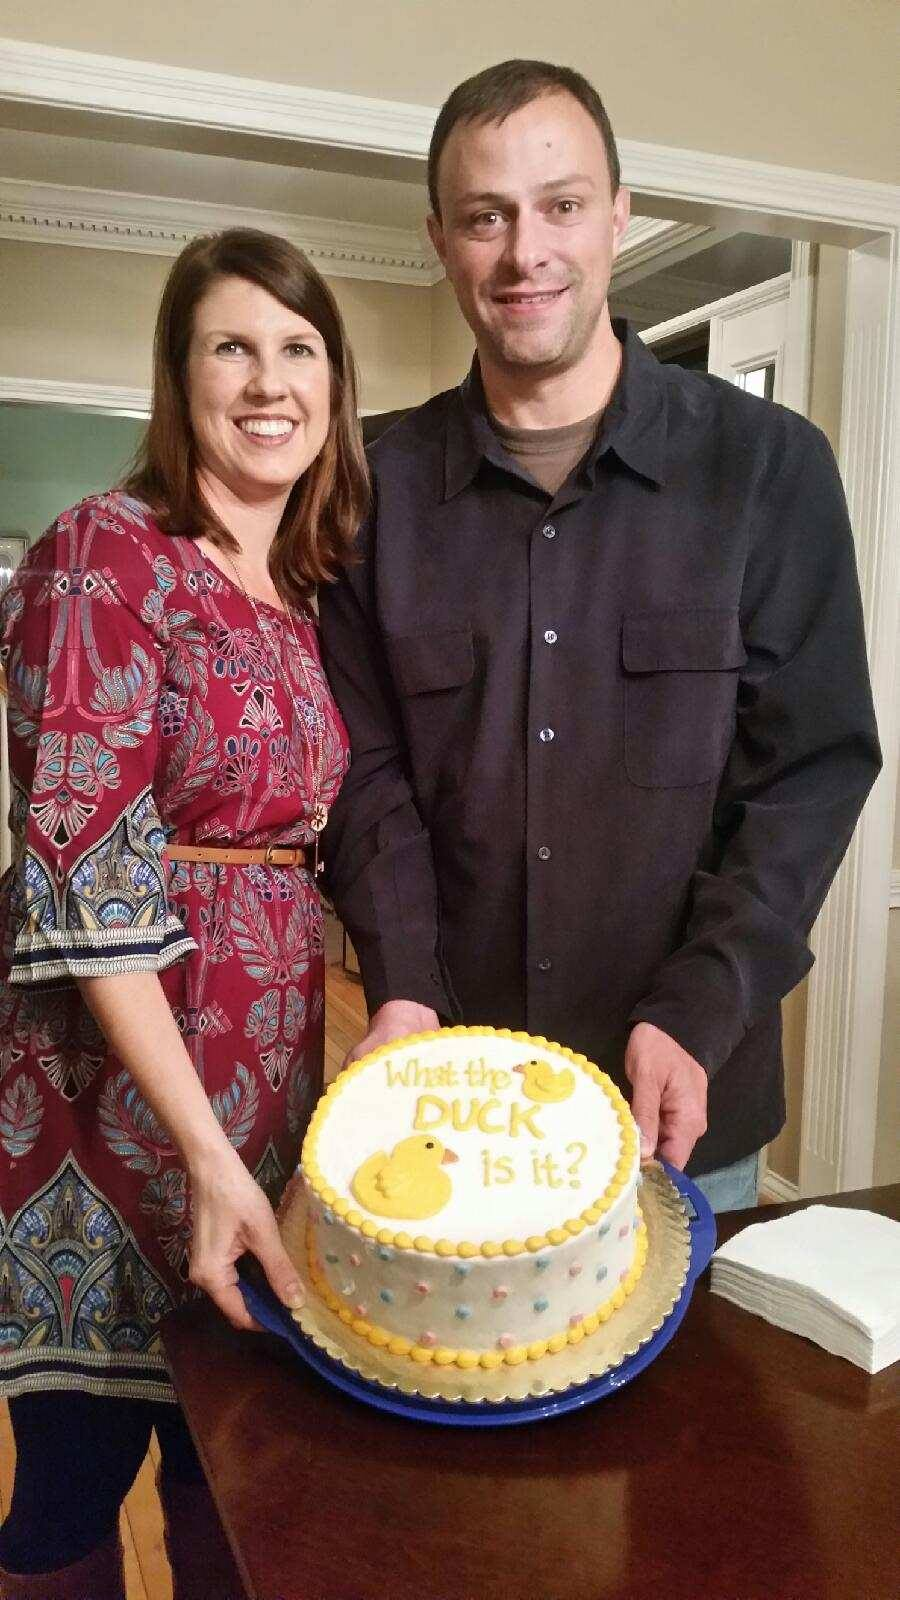 Man and woman stand holding a cake with a duck on it.